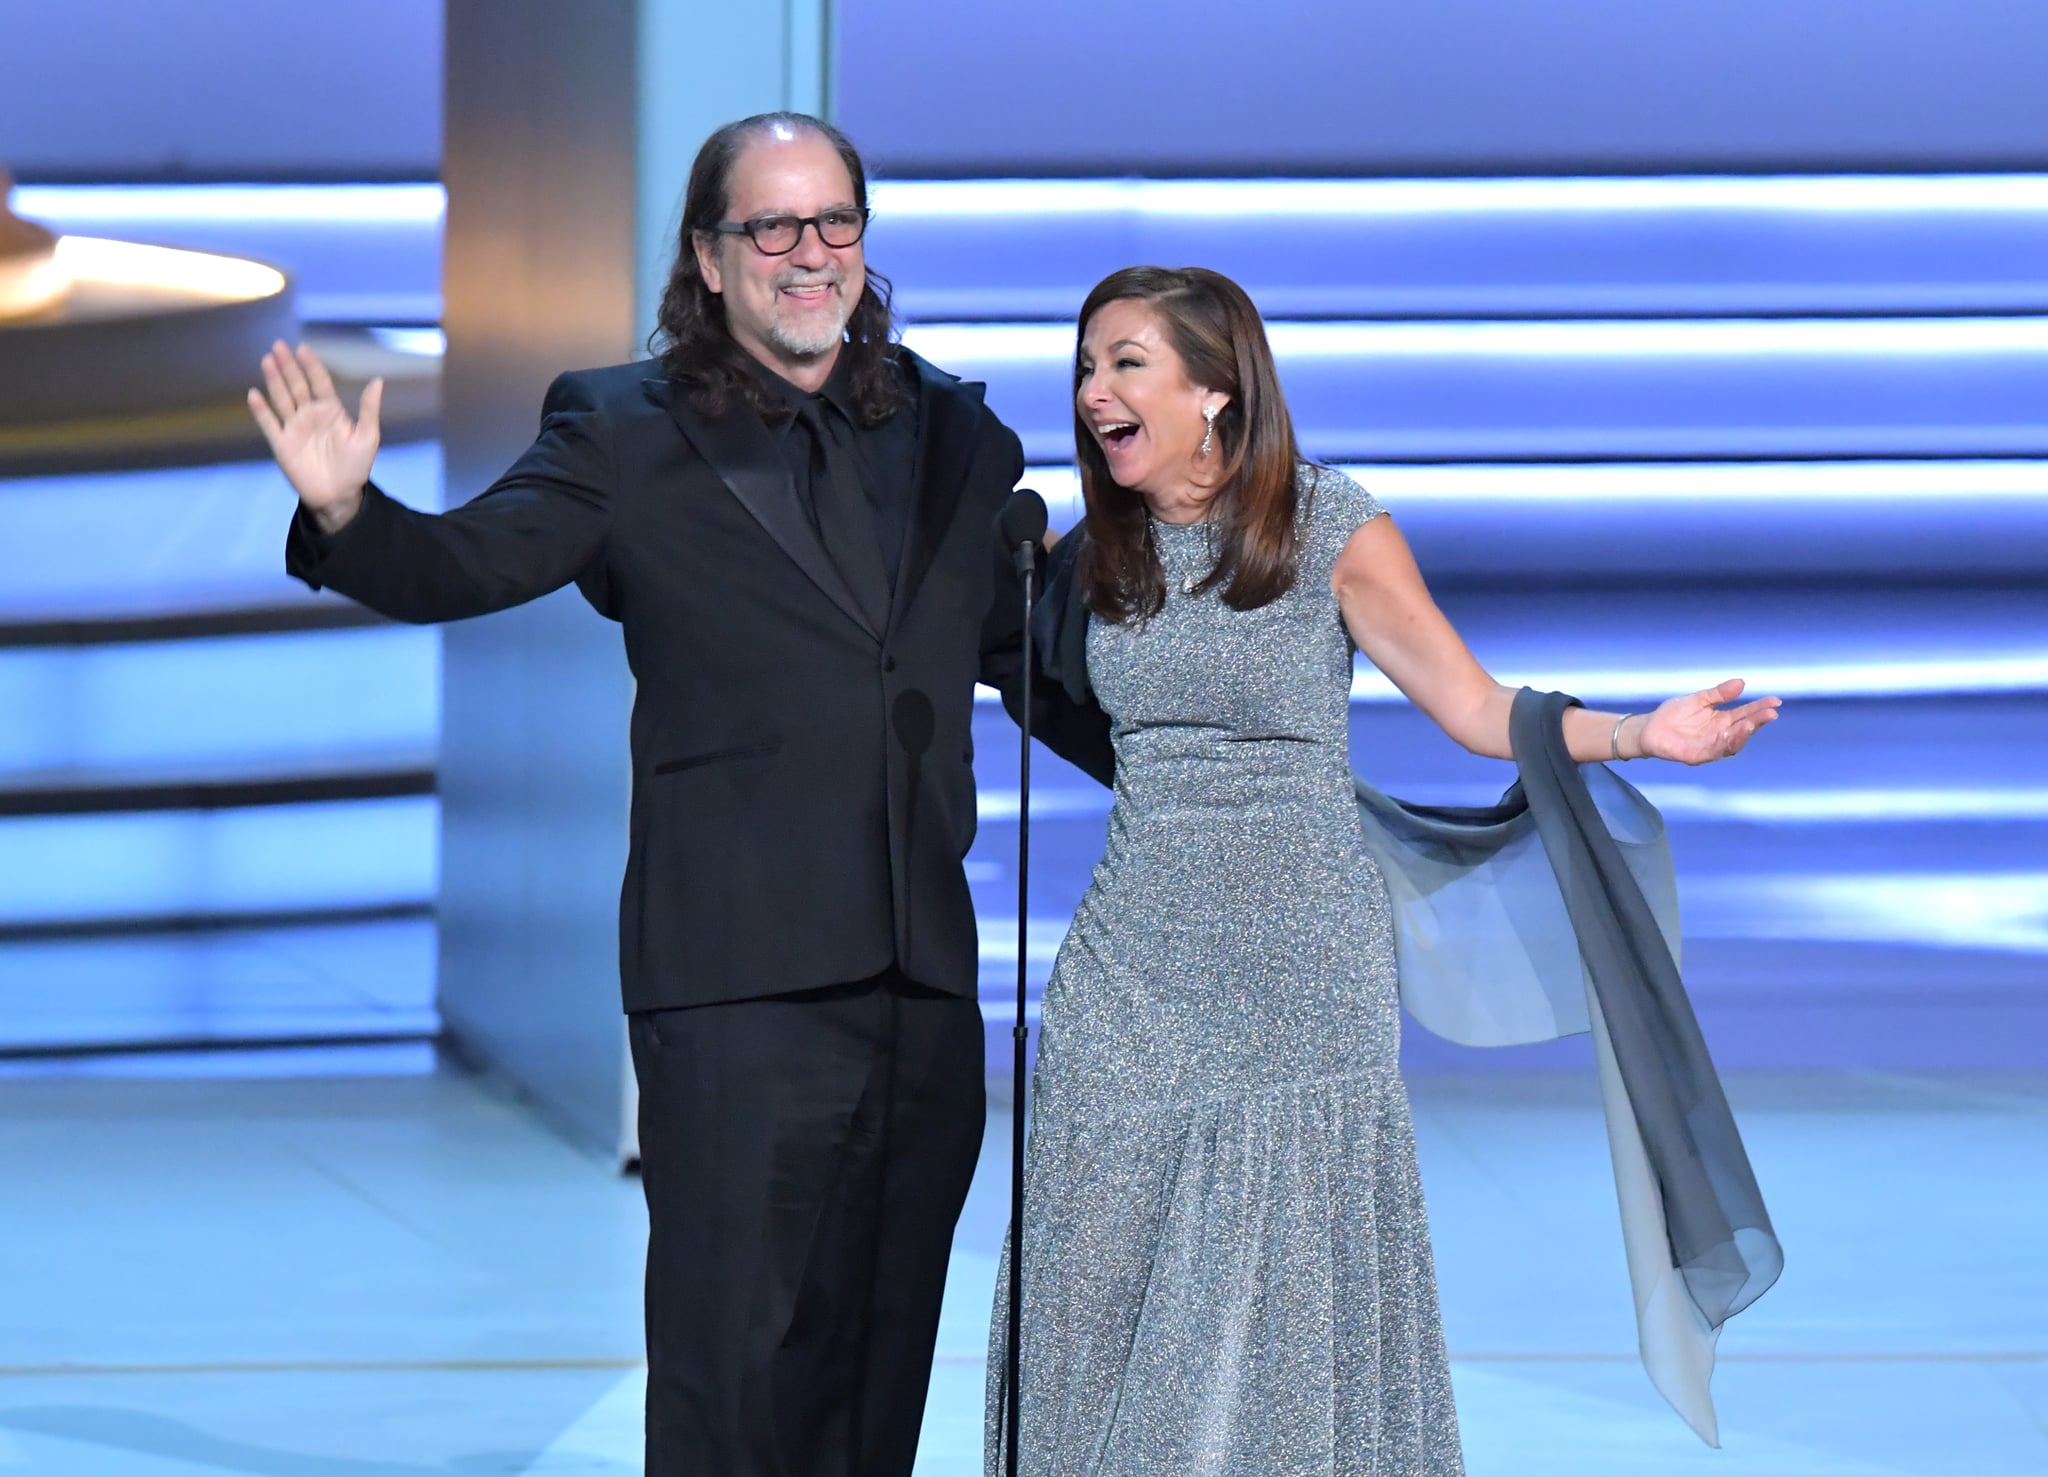 LOS ANGELES, CA - SEPTEMBER 17:  Glenn Weiss (L), winner of the Outstanding Directing for a Variety Special award for 'The Oscars,' and Jan Svendsen react after getting engaged onstage during the 70th Emmy Awards at Microsoft Theater on September 17, 2018 in Los Angeles, California.  (Photo by Lester Cohen/WireImage)